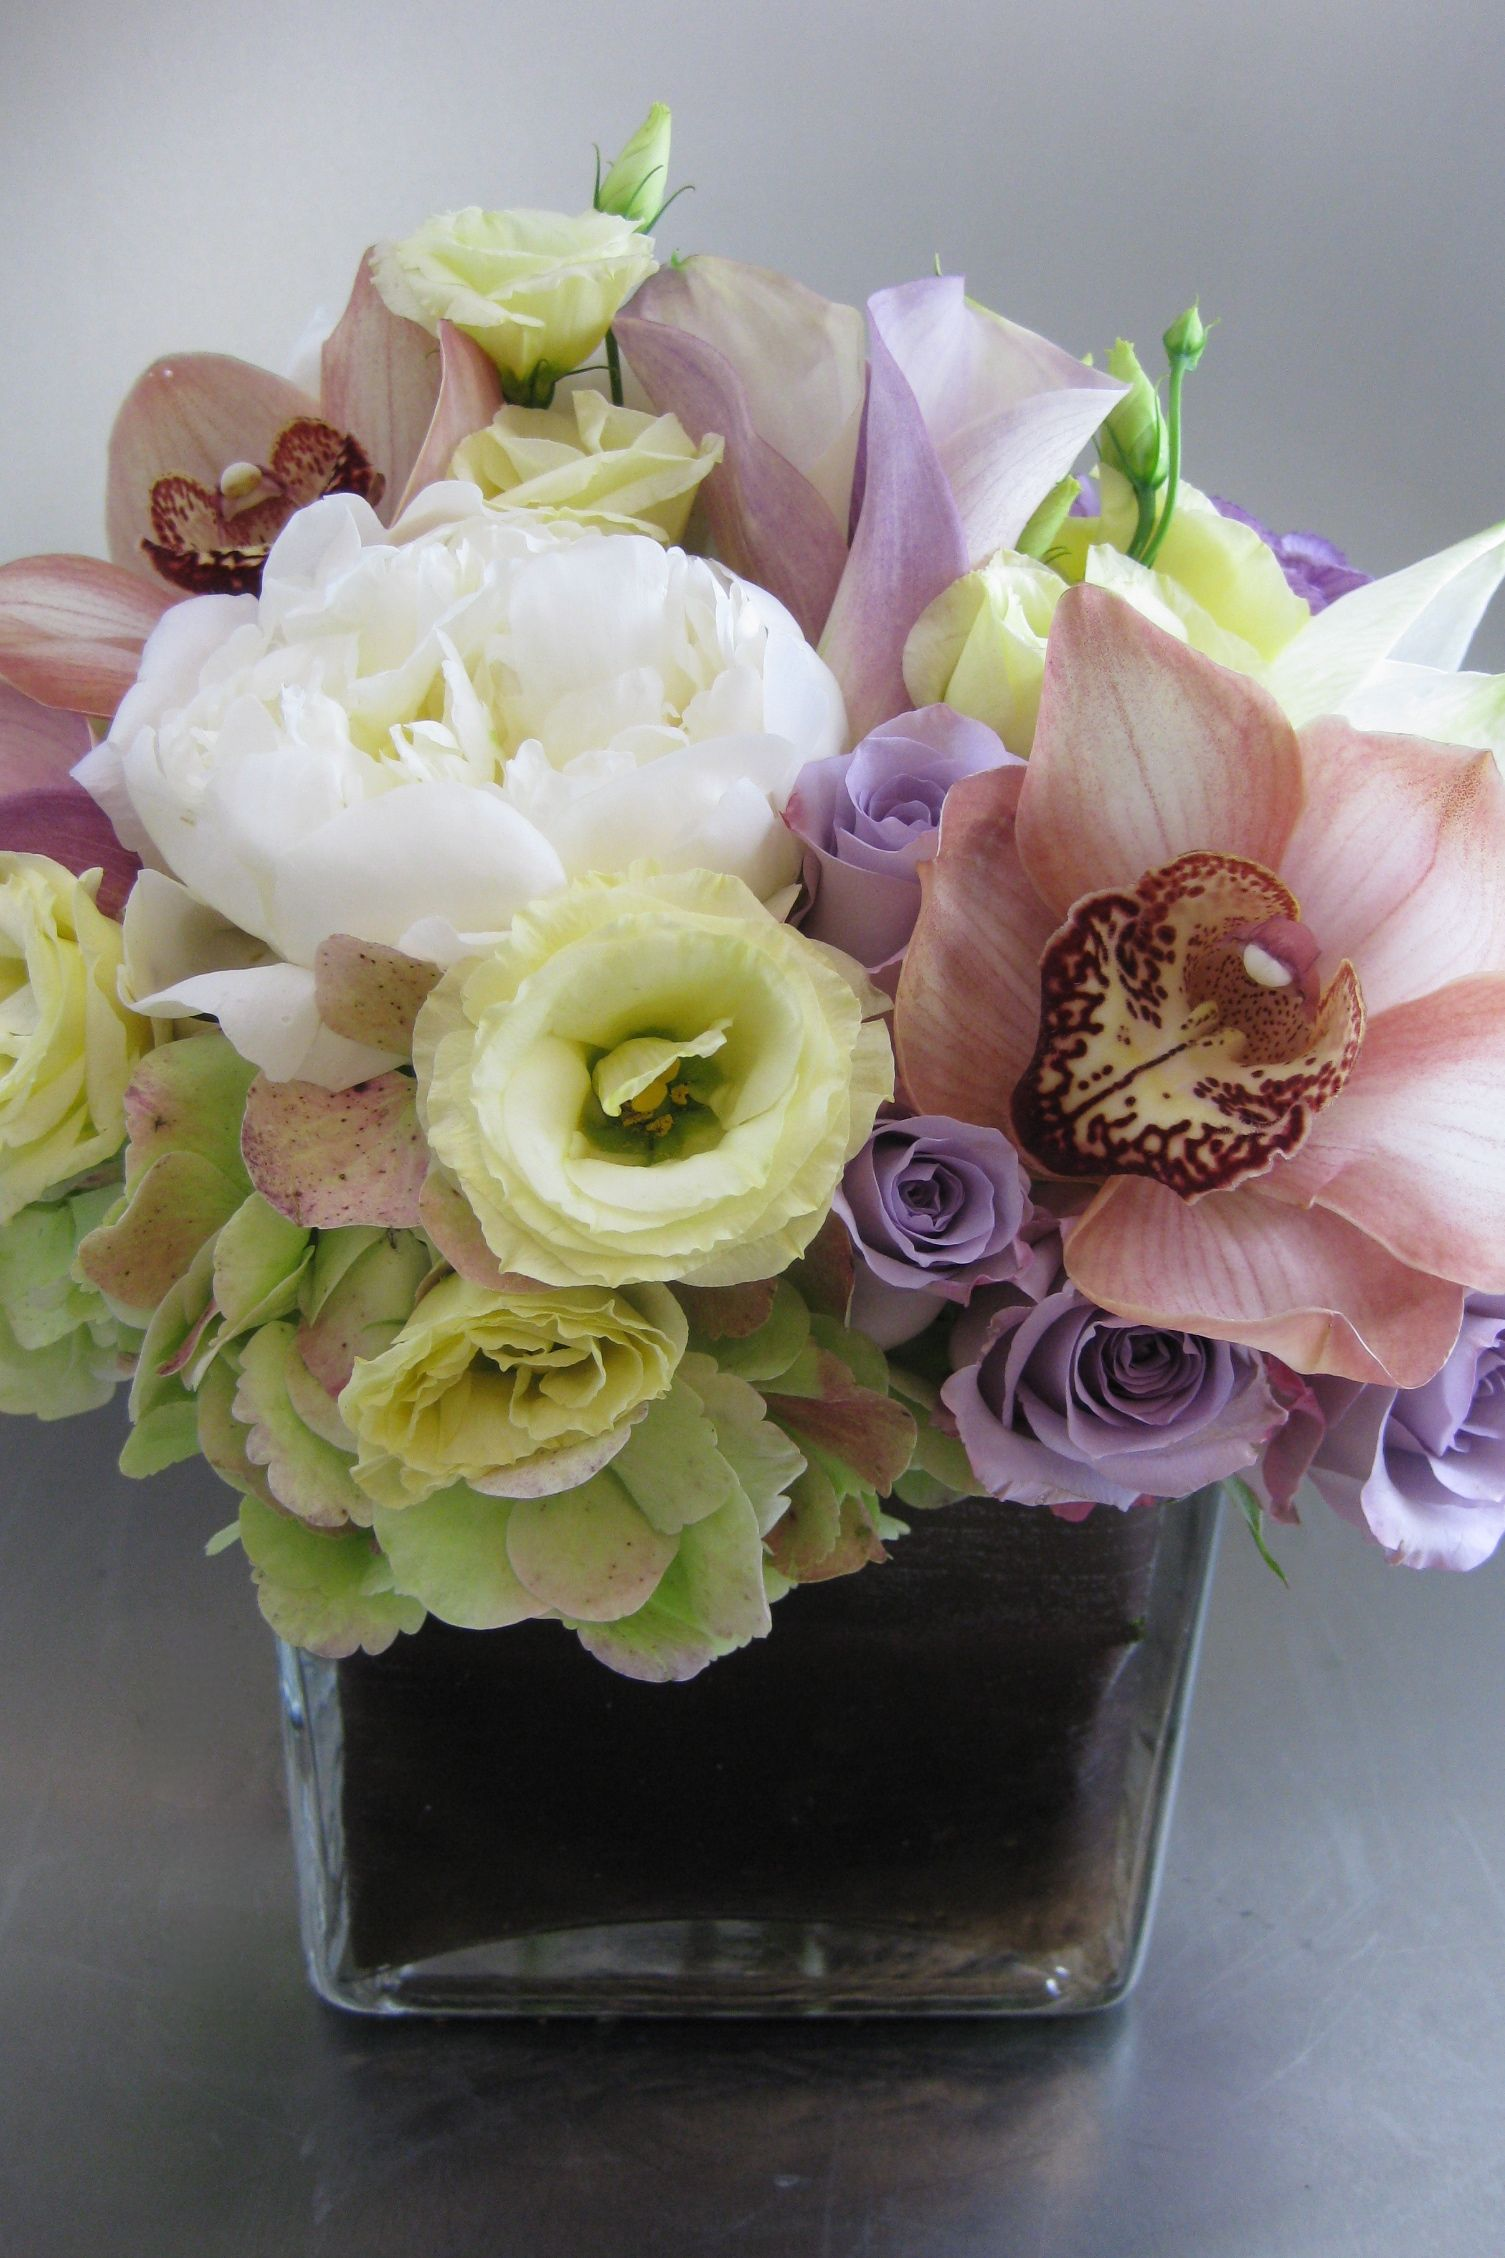 Cream Lavender Taupe With Cymbidium Orchids Re Pinned By Www Westpointorchids Com Modern Flower Arrangements Cymbidium Orchids Flower Arrangements